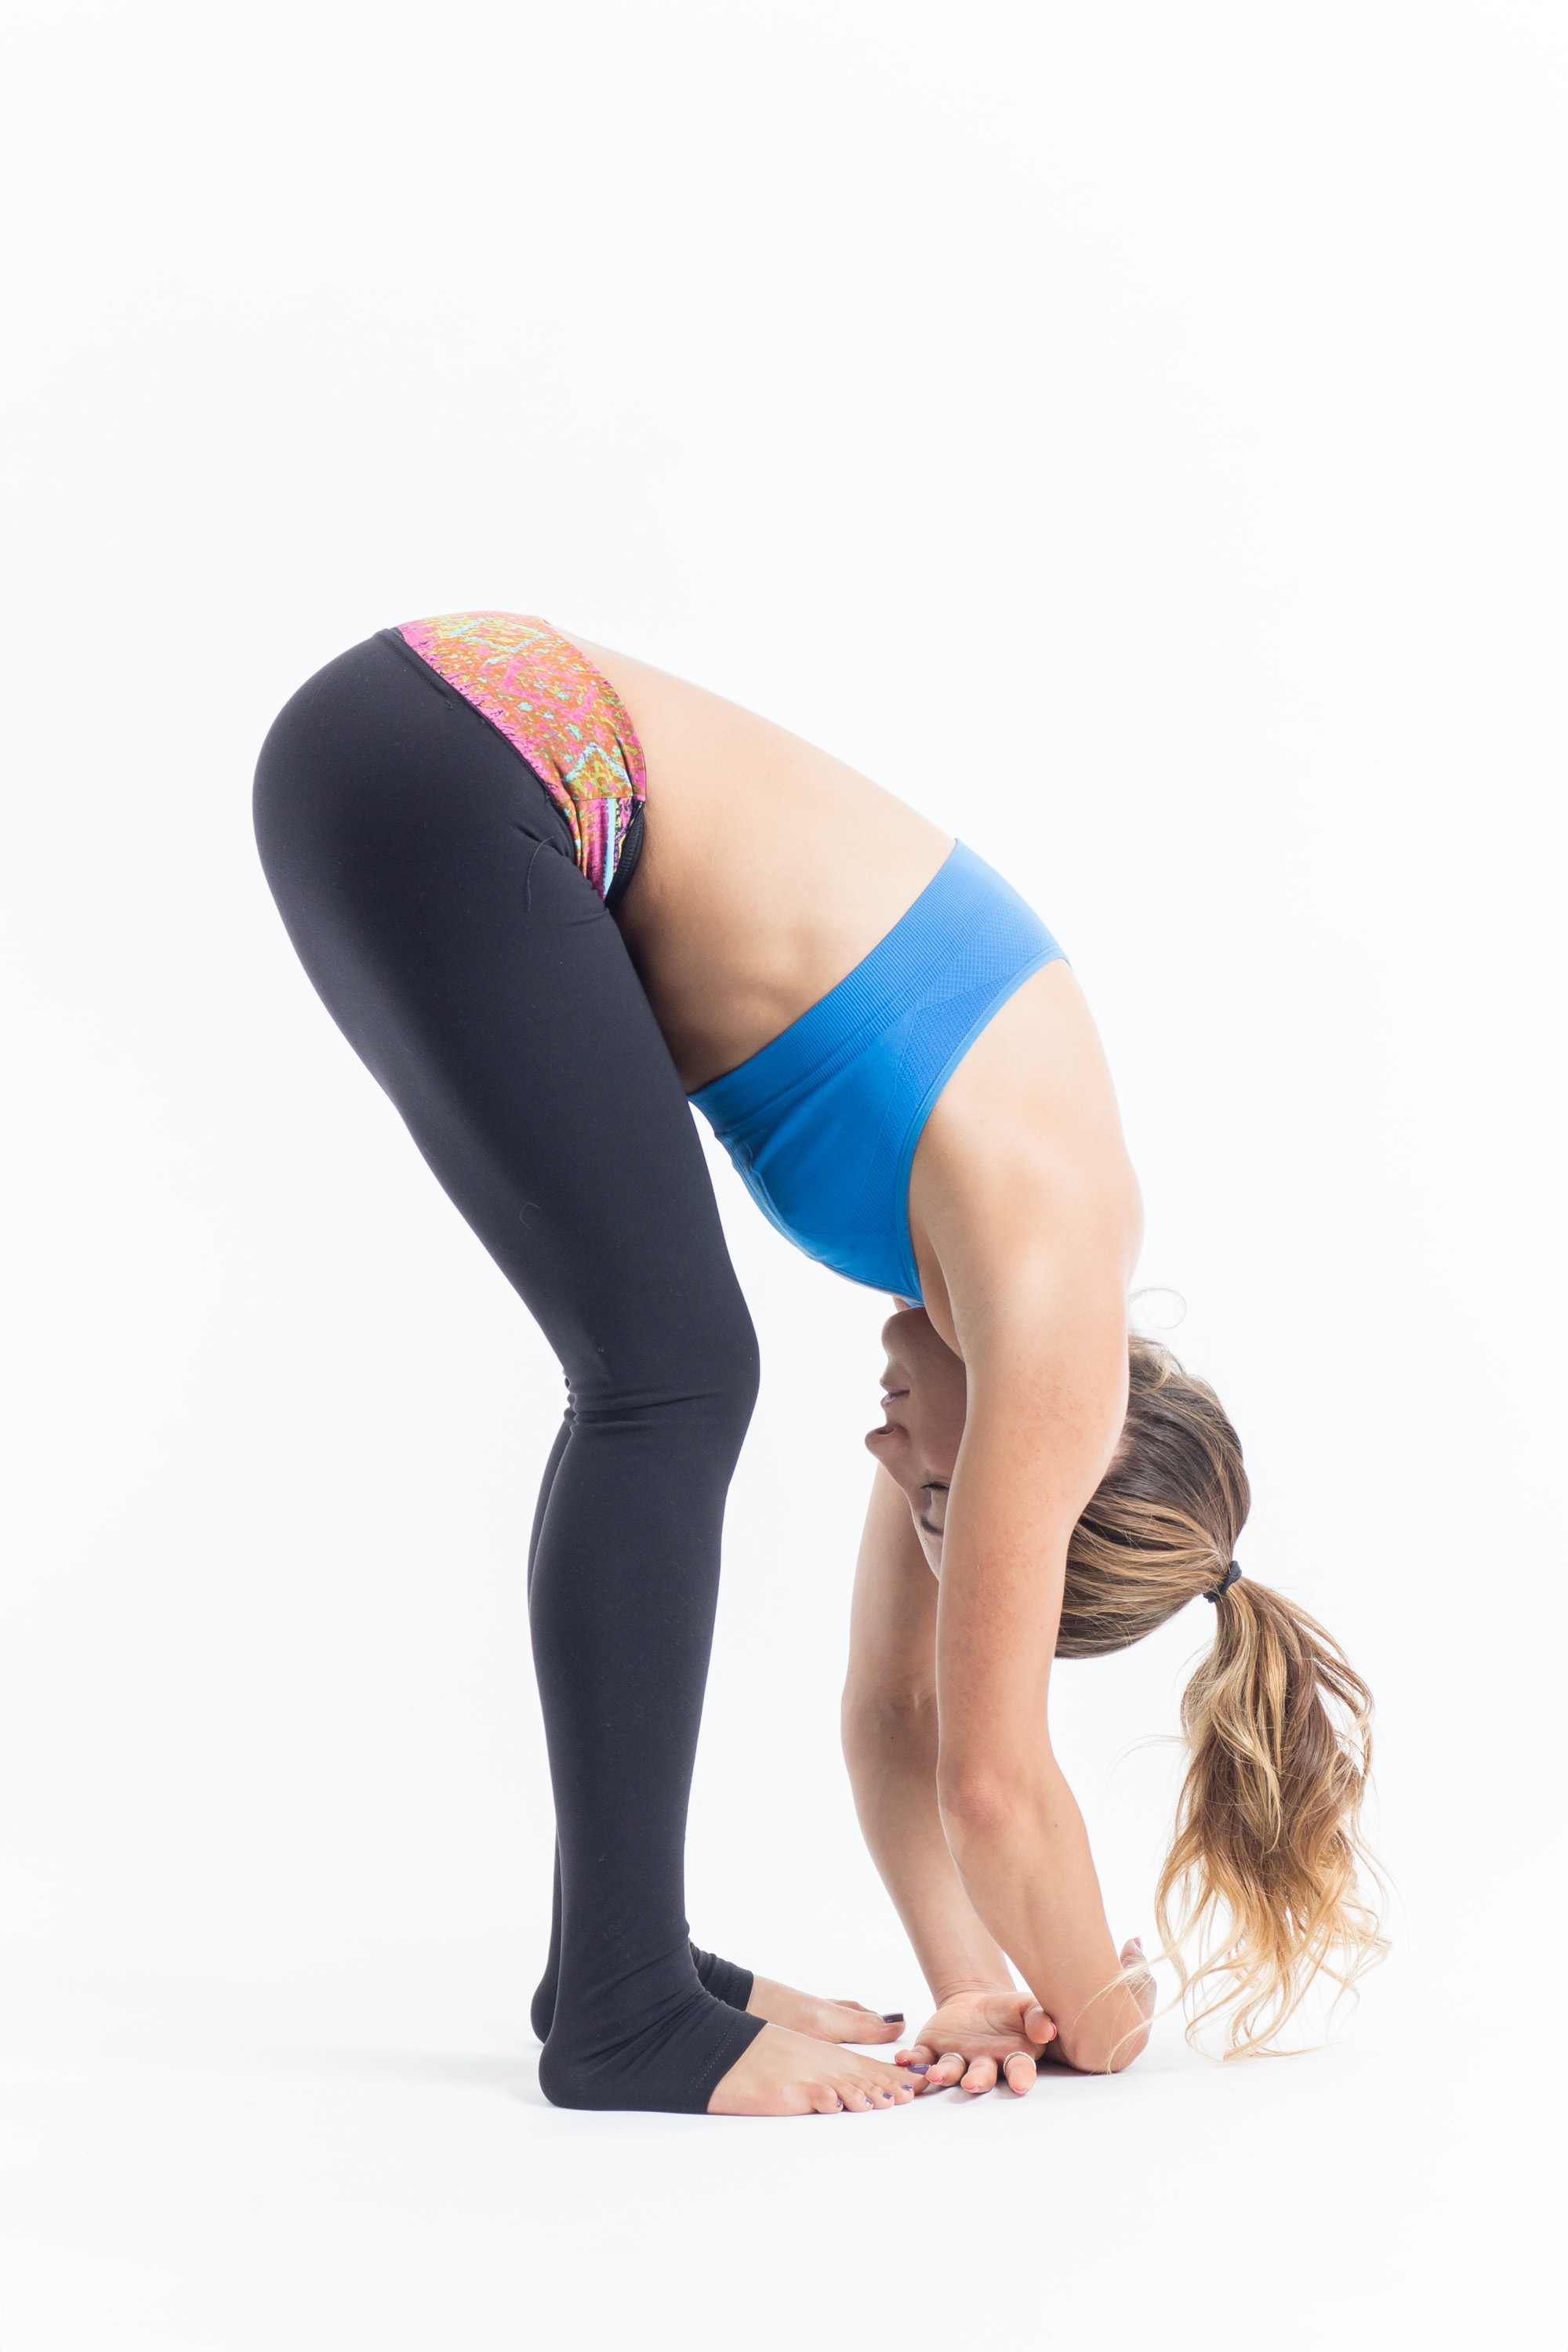 Yoga Poses for Runners - Standing forward fold